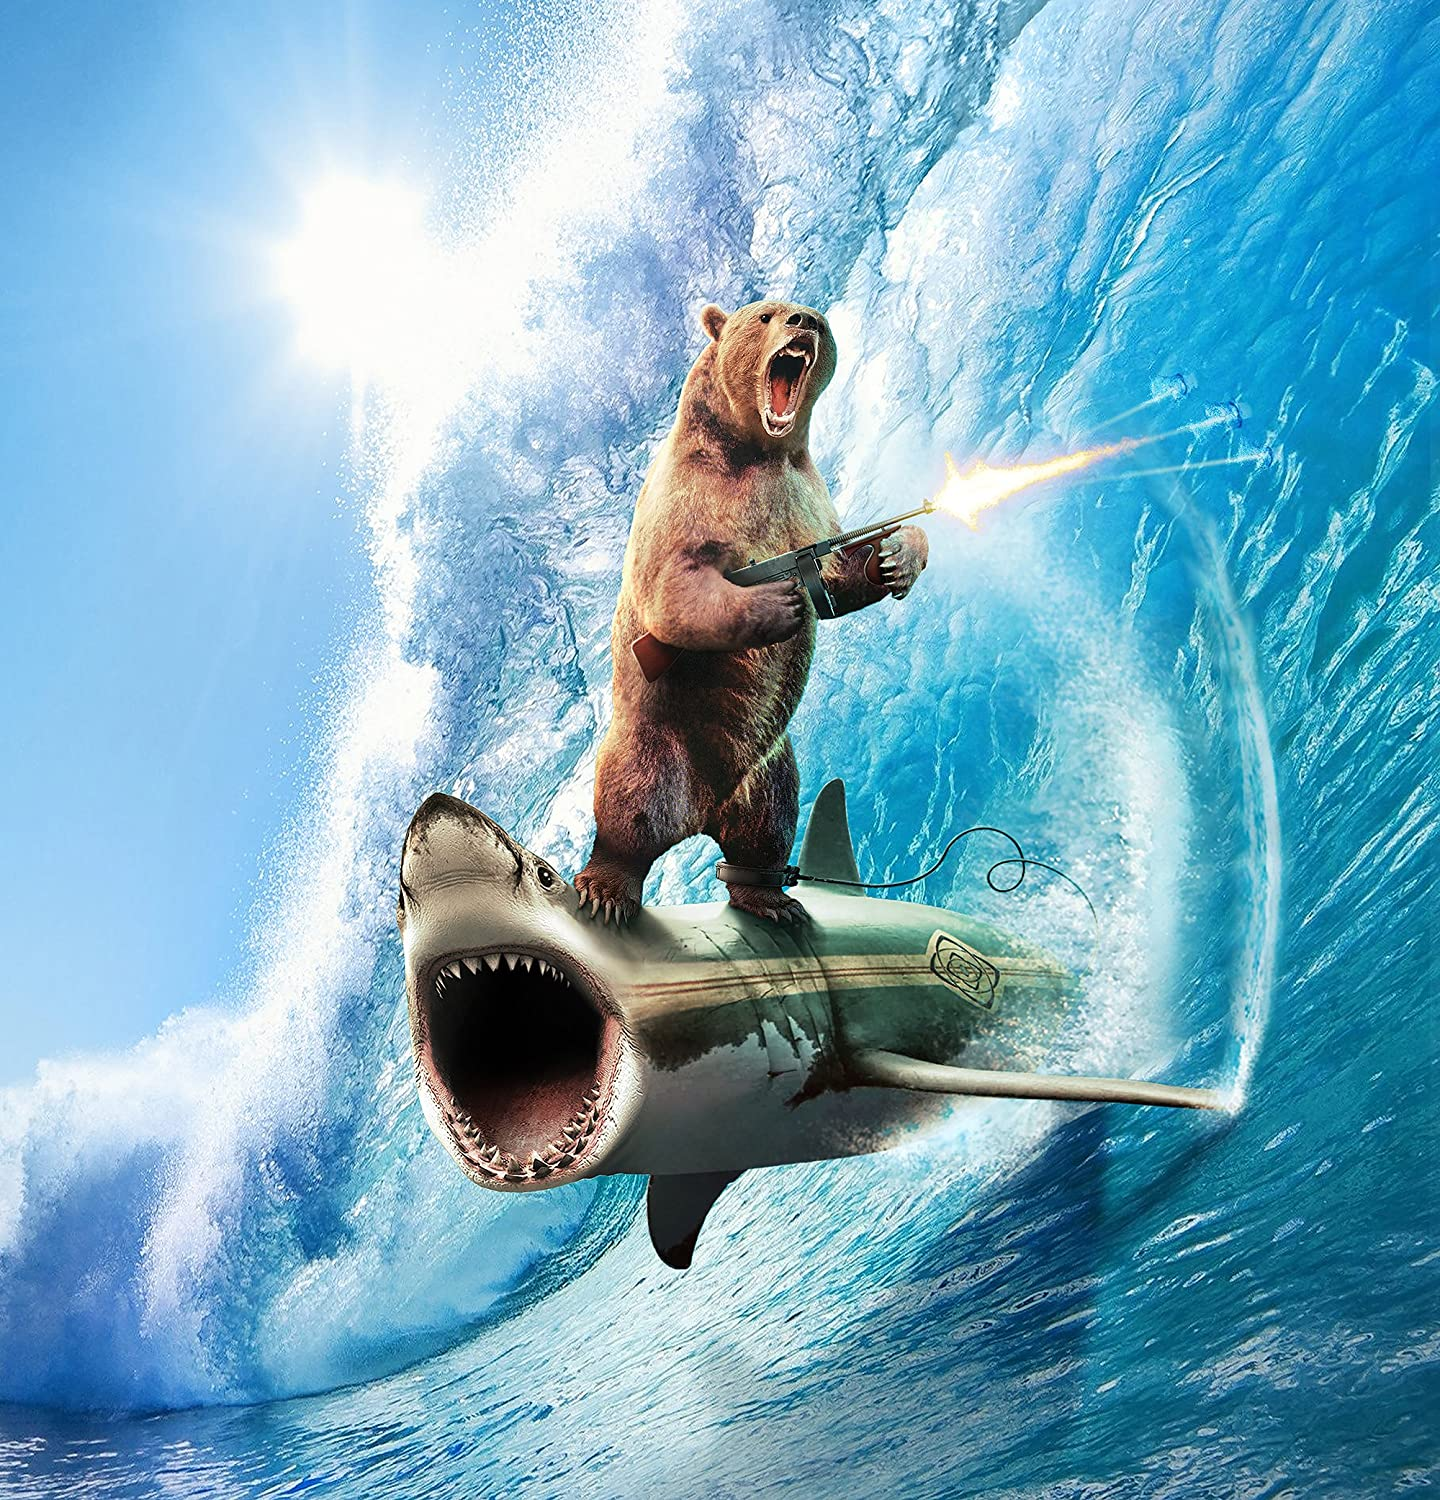 Bear surfing on a shark